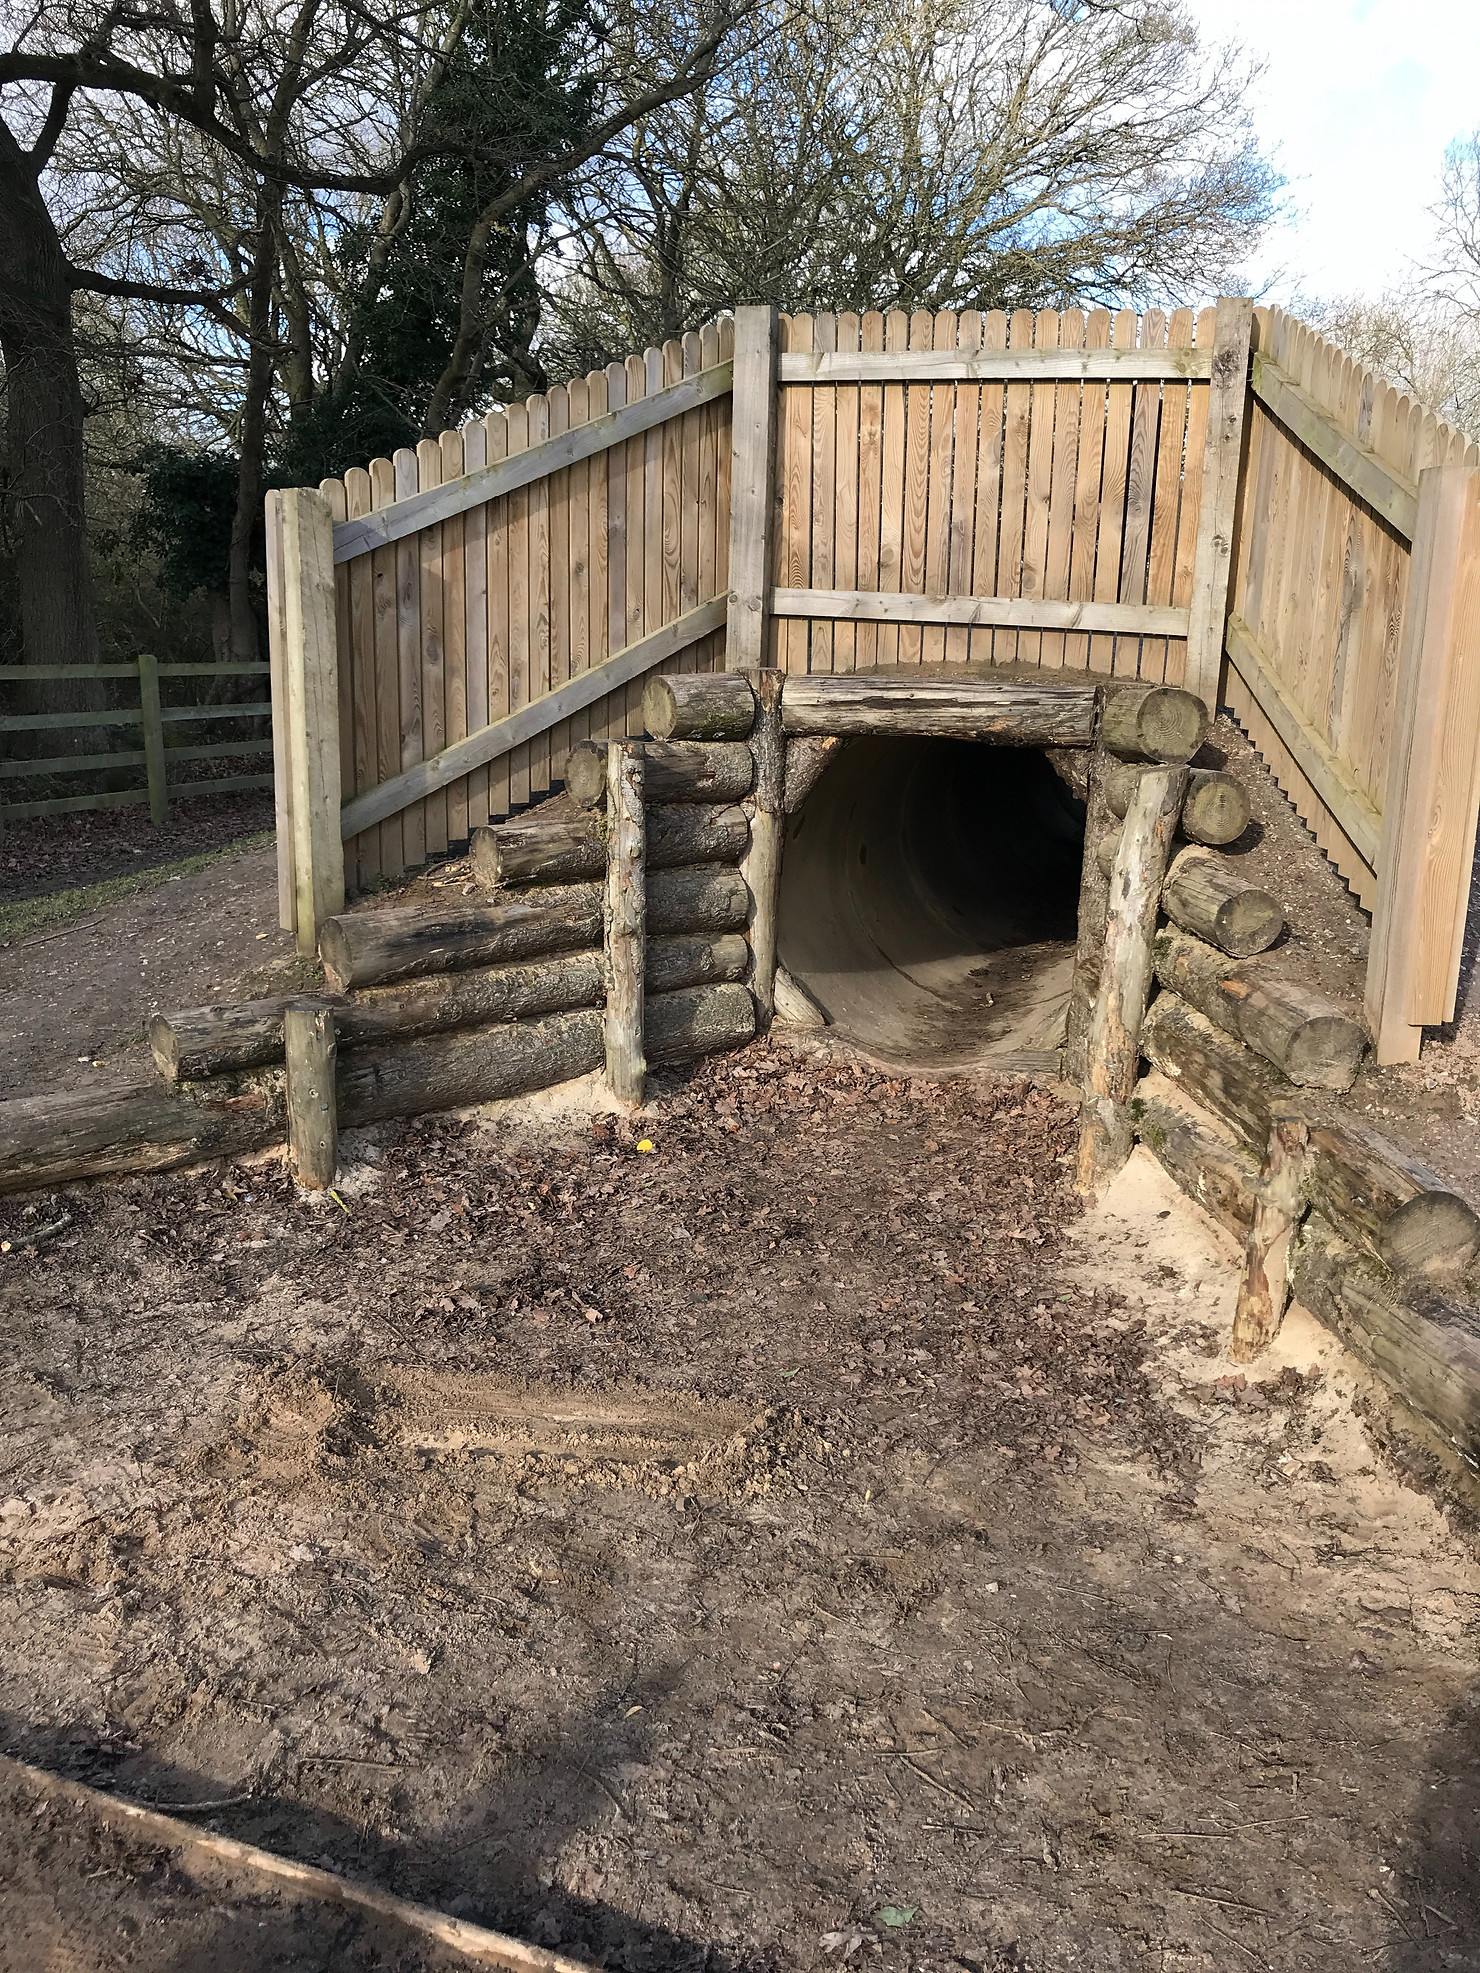 Play area at Dinton Pasture Country Park.